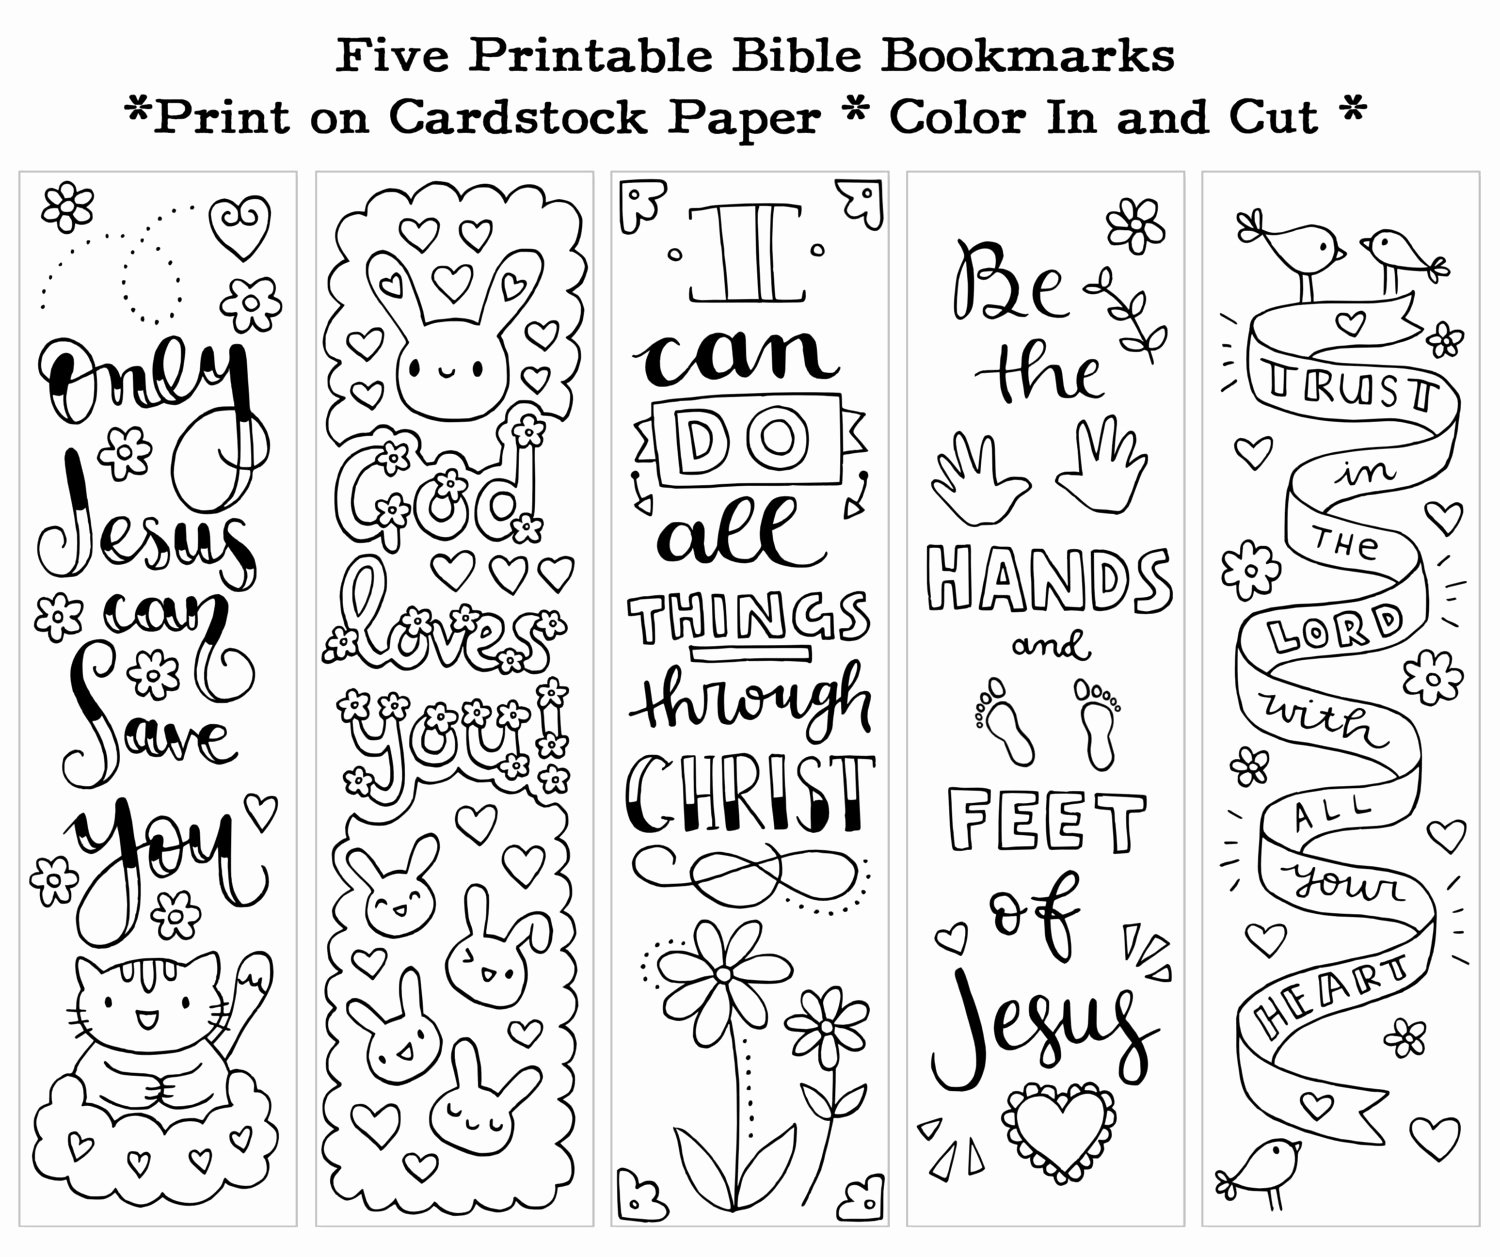 Free Printable Christian Bookmarks Lovely Five Instant Printable Color In Cute Bible Bookmarks by Susyan